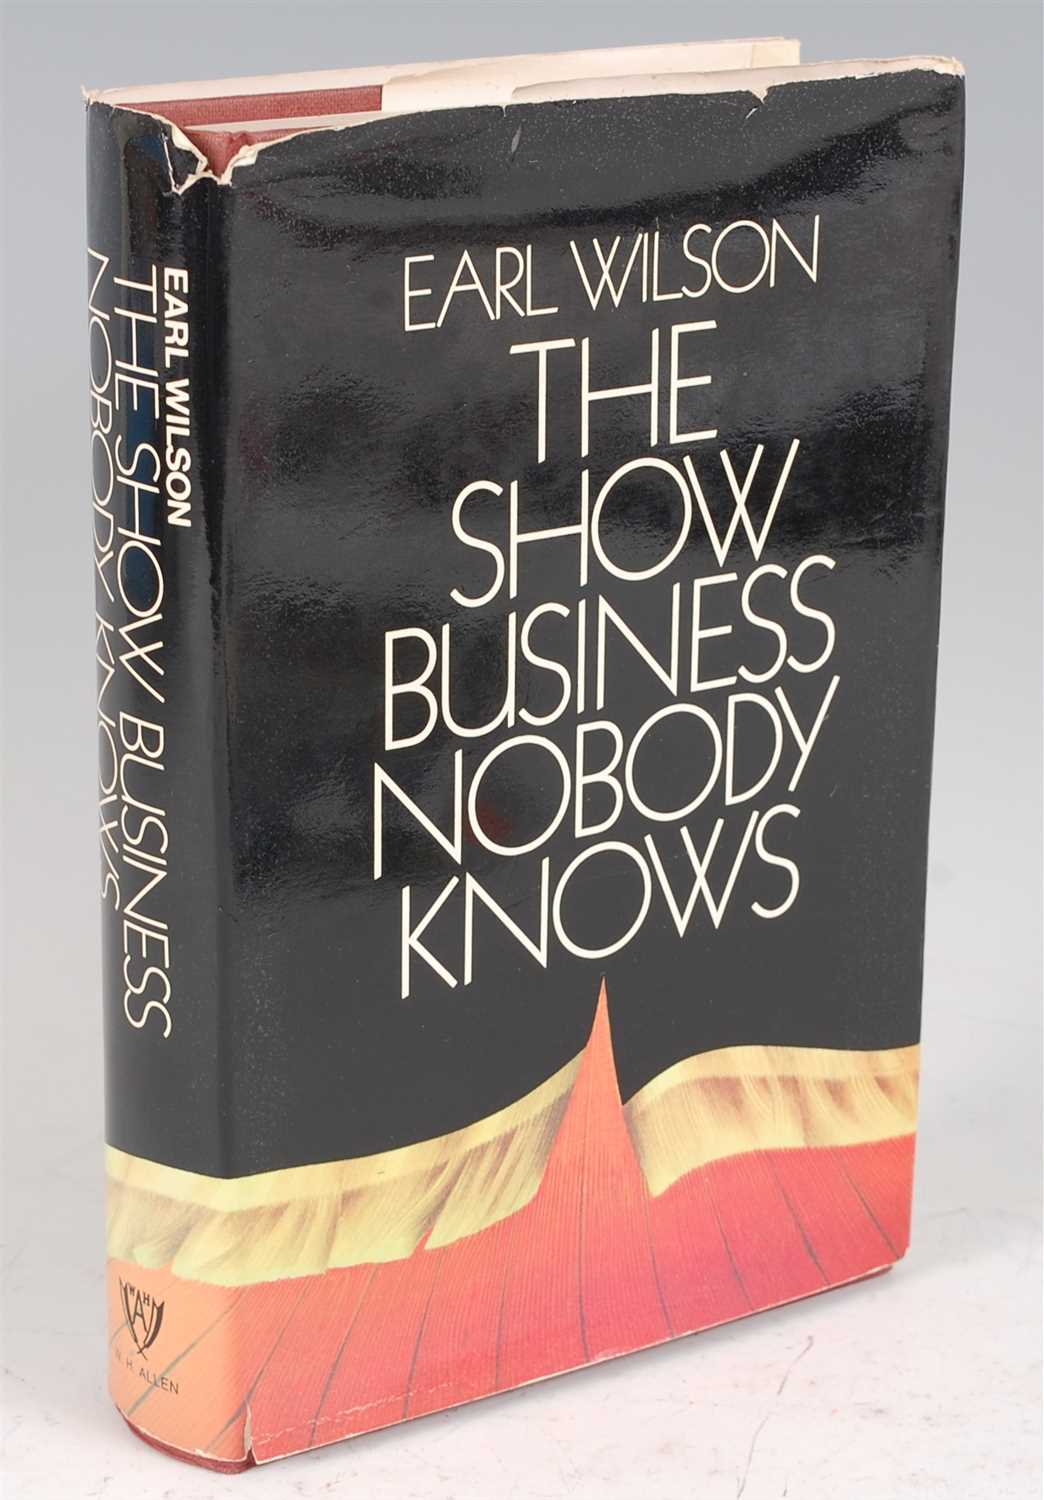 Lot 620-Earl Wilson, The Show Business Nobody Knows